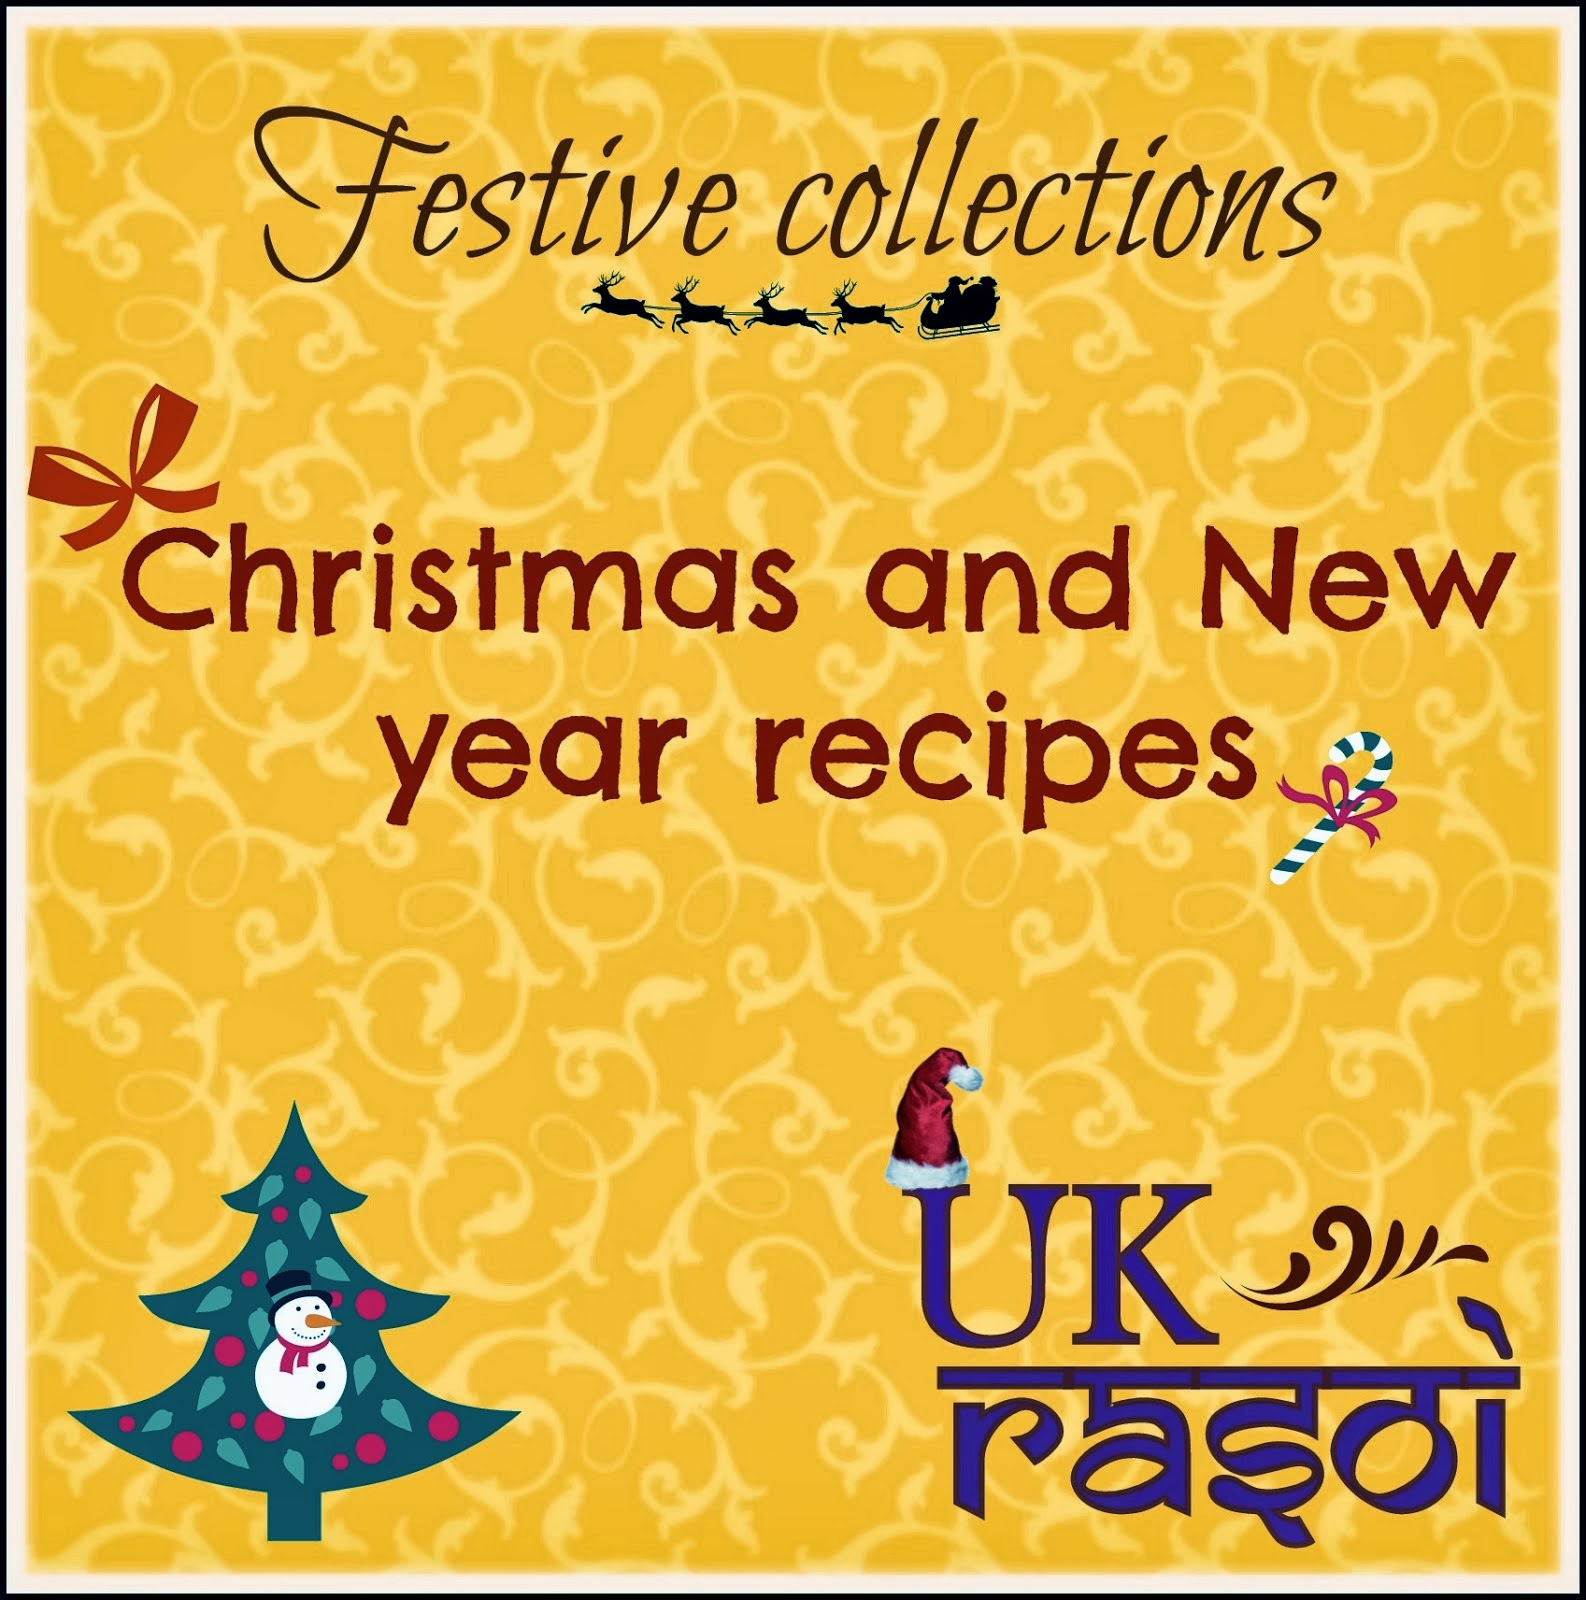 FESTIVE COLLECTIONS